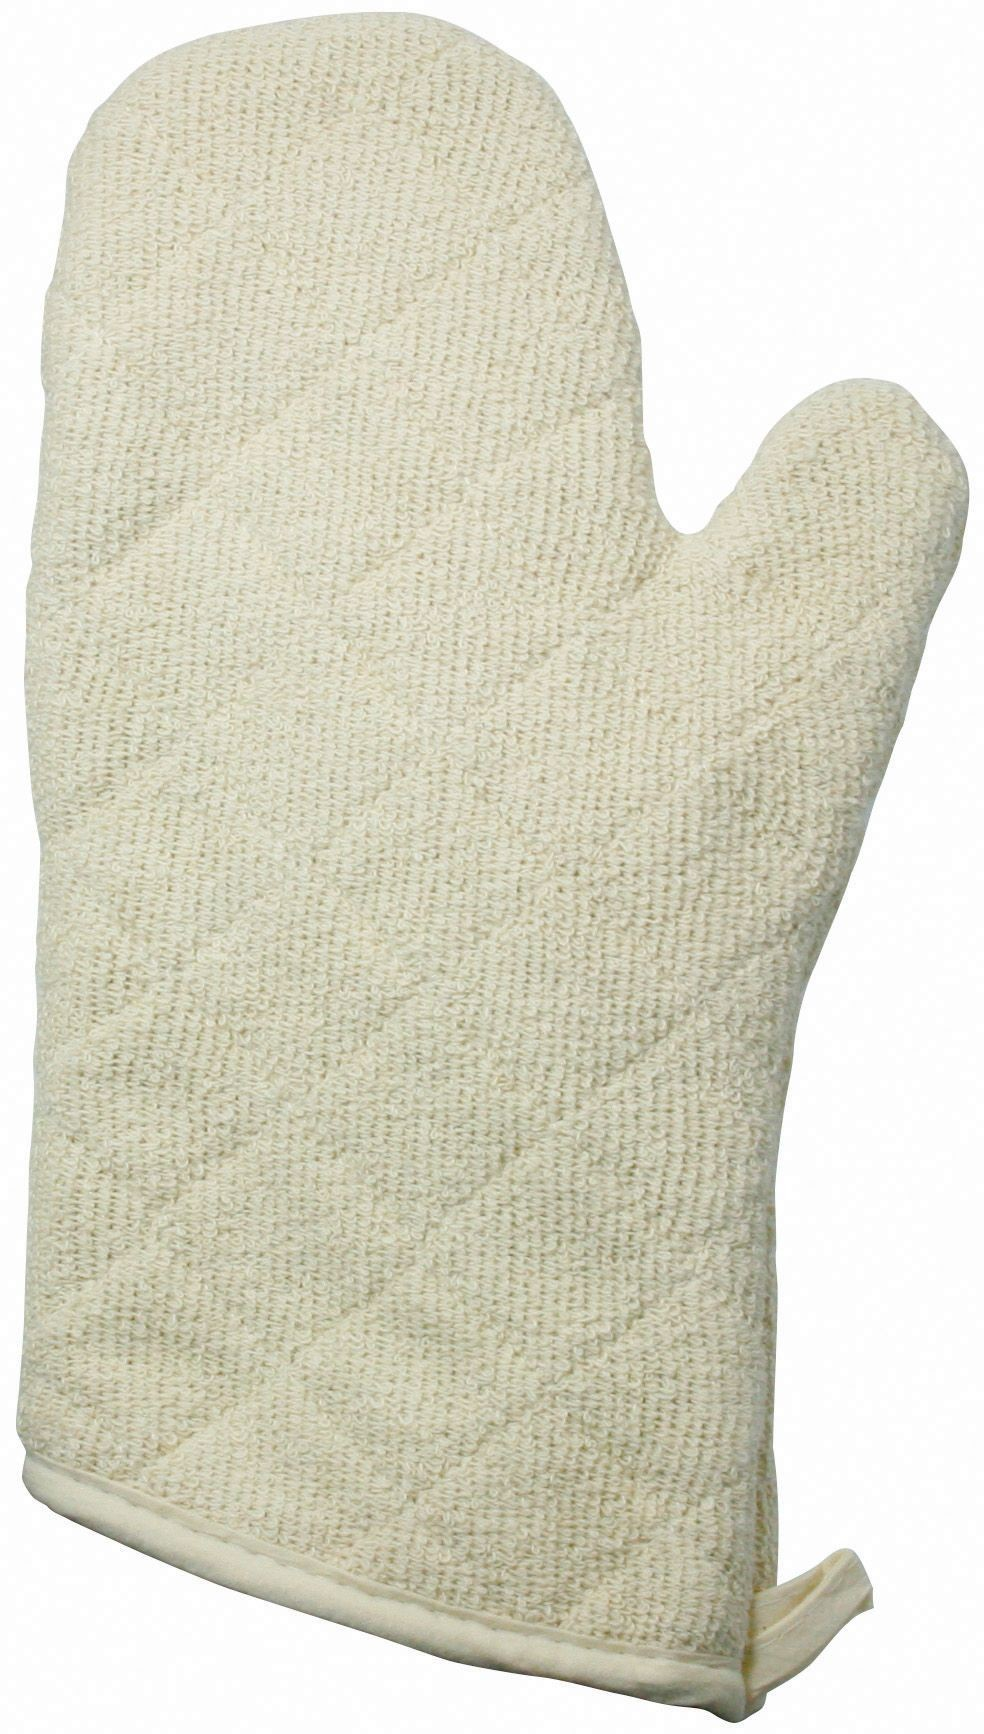 Terry Cloth Oven Mitt - 13 (Protects up to 600F)